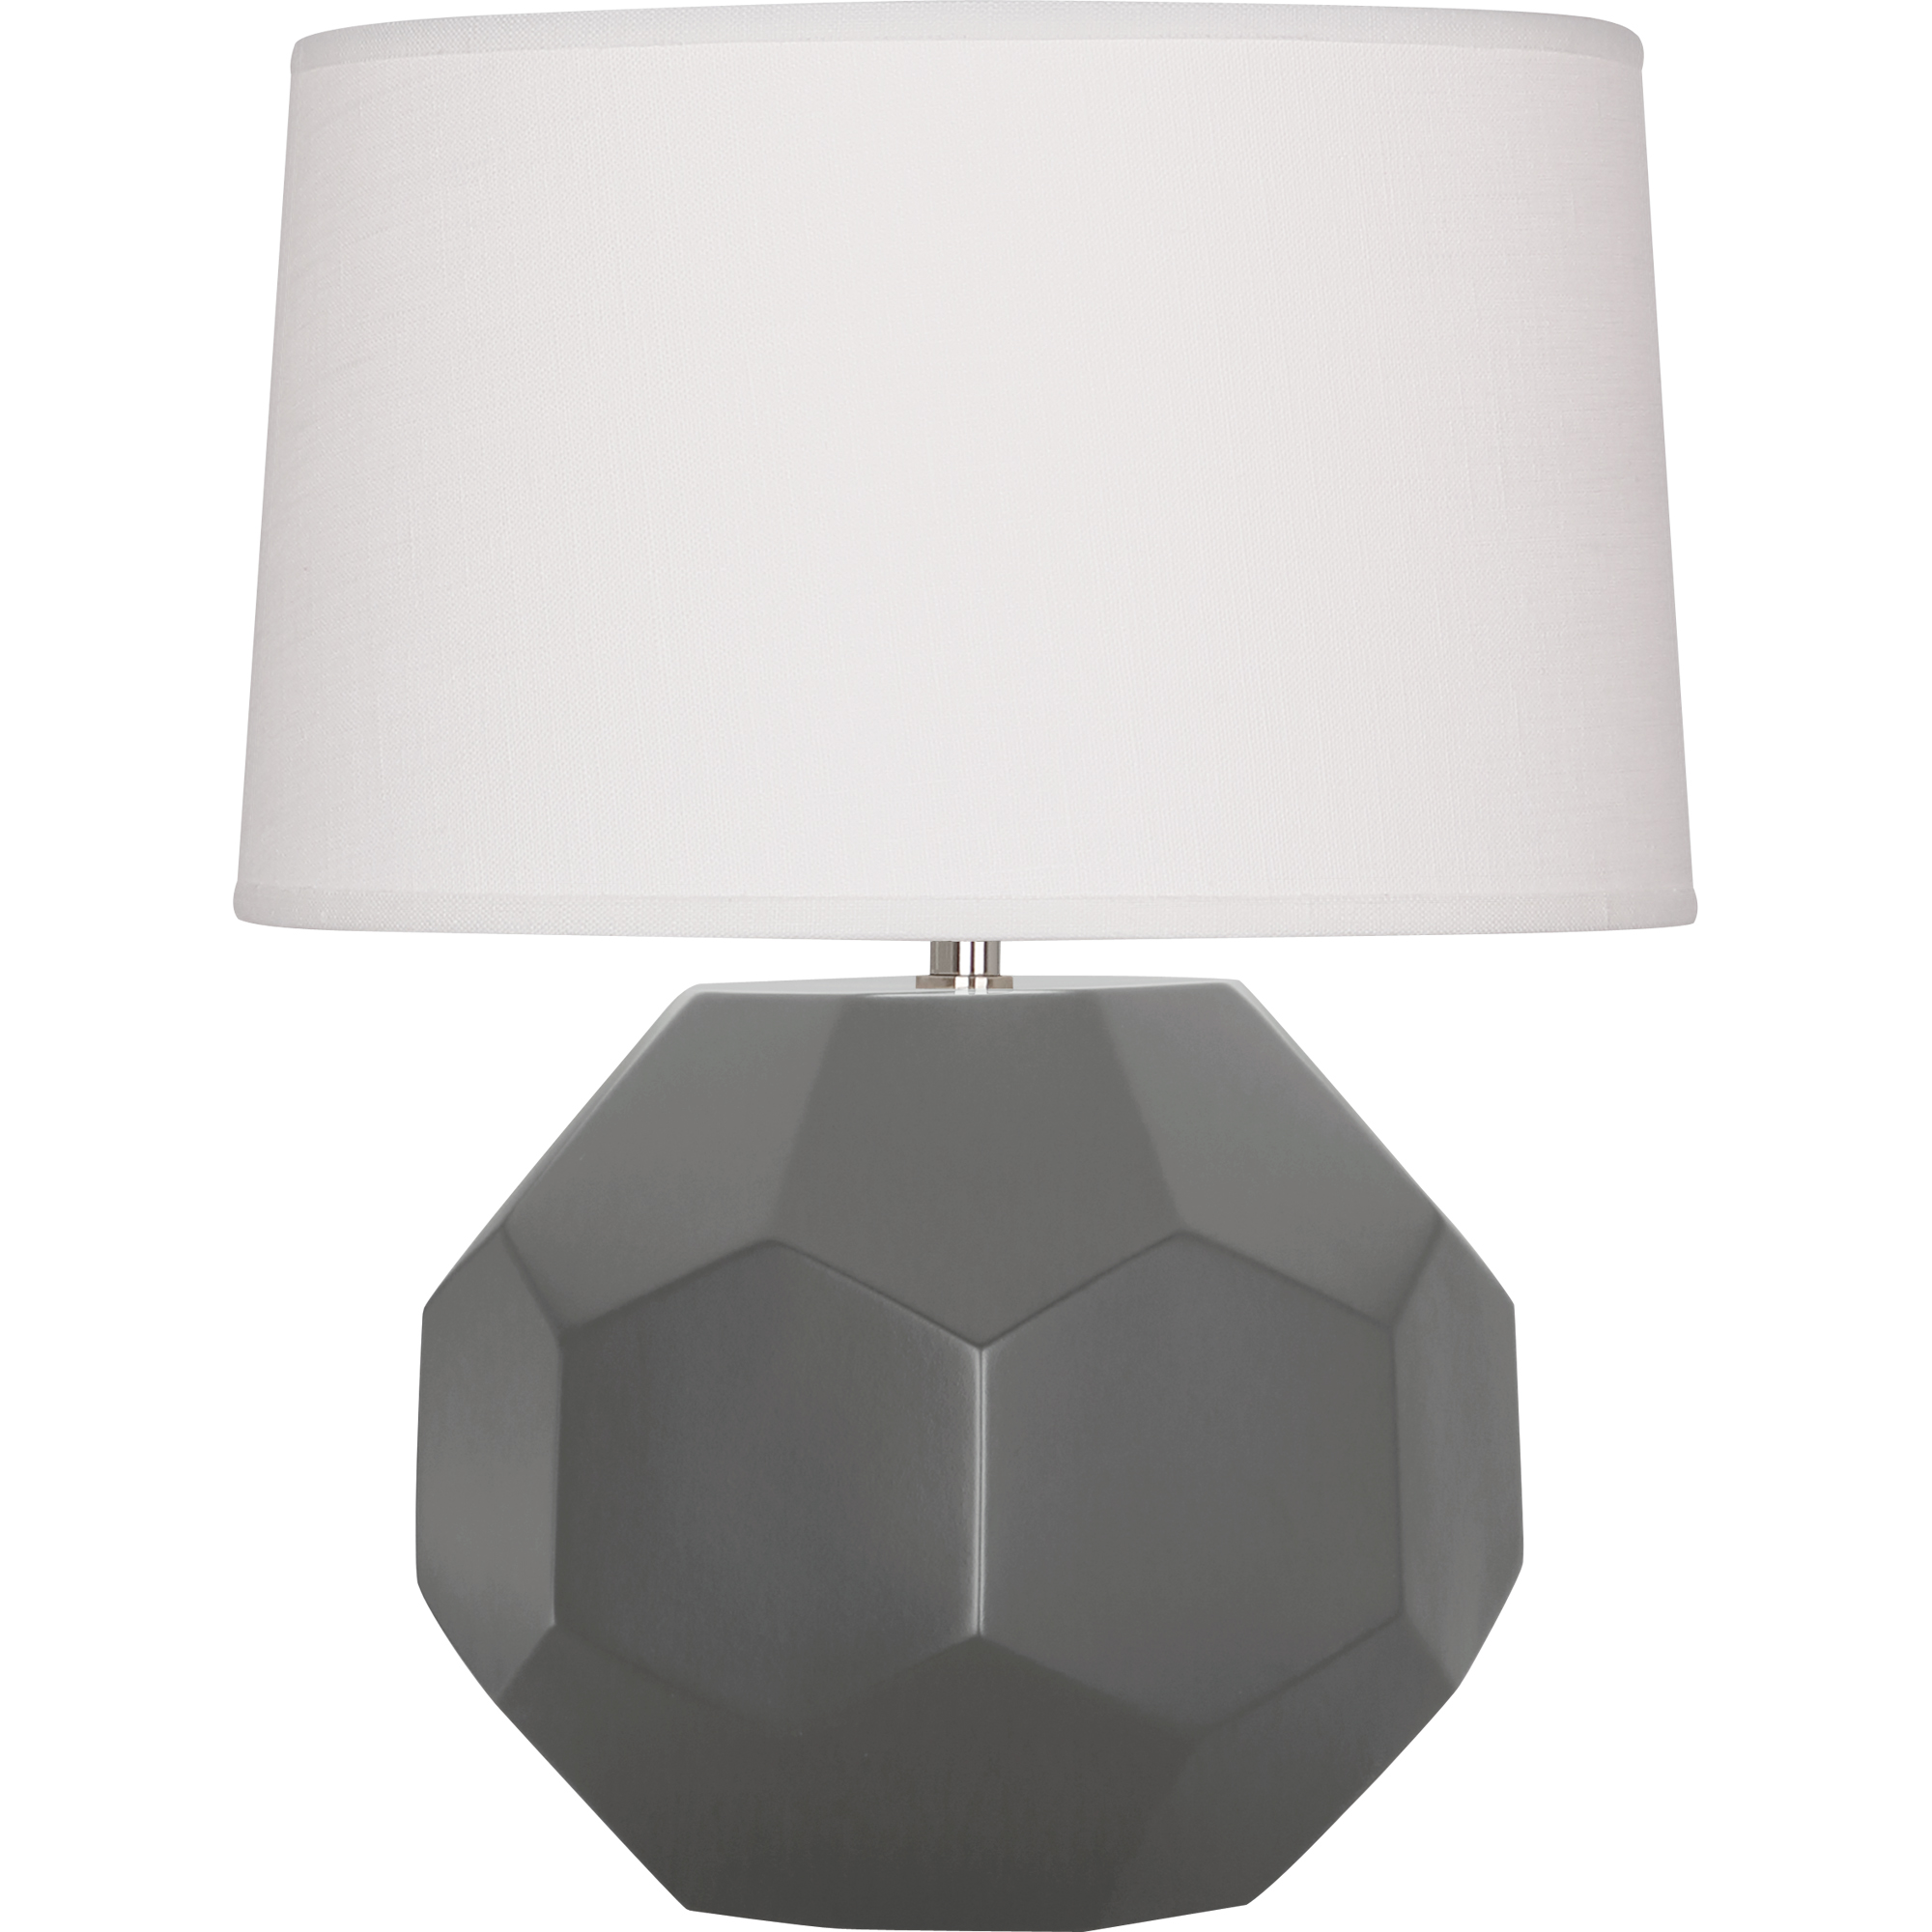 Franklin Table Lamp Style #MCR01